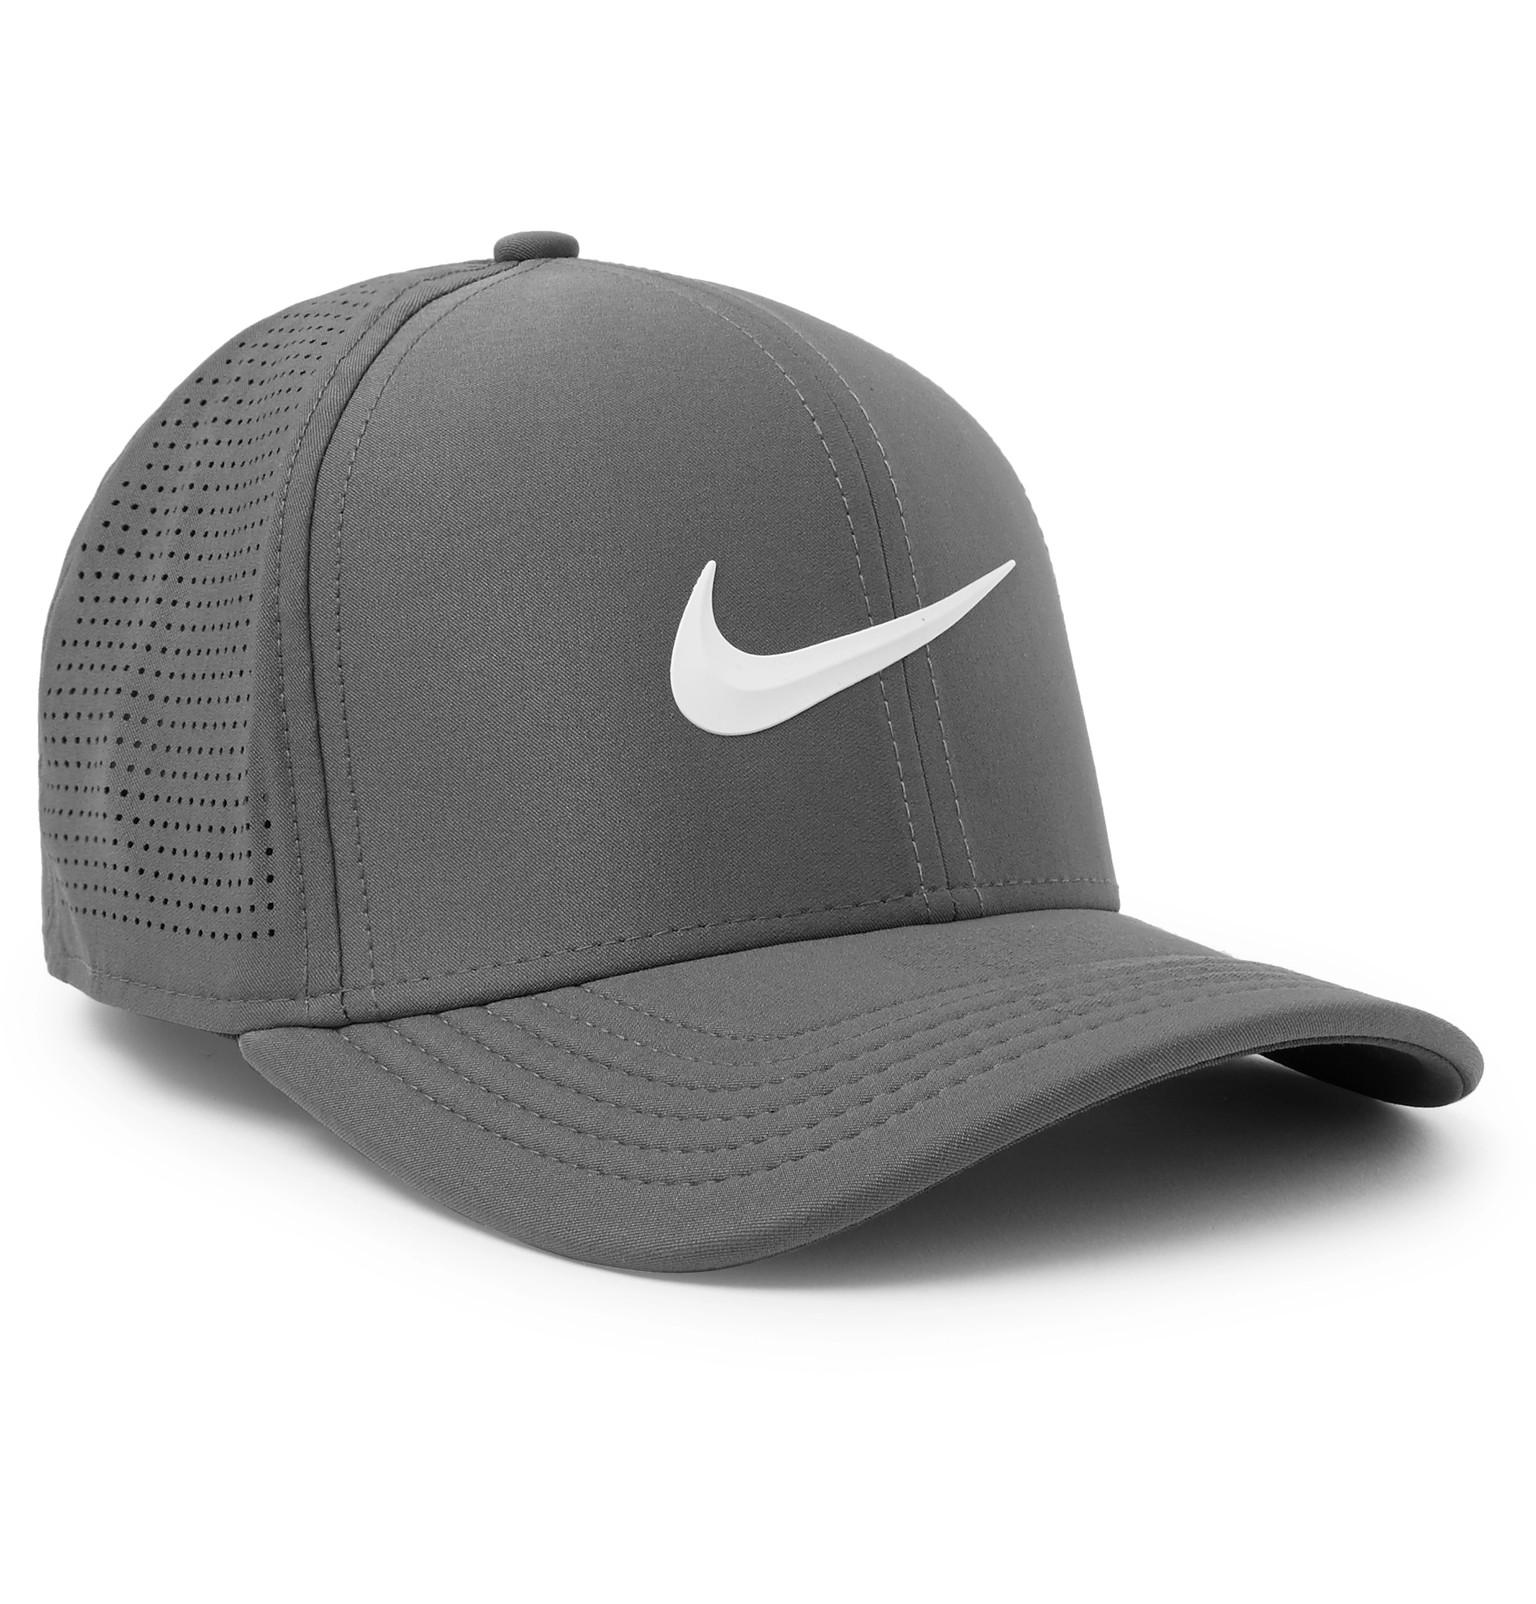 ffdbf5619ec6d ... new zealand nike aerobill classic 99 perforated dri fit cap in gray for men  lyst af938